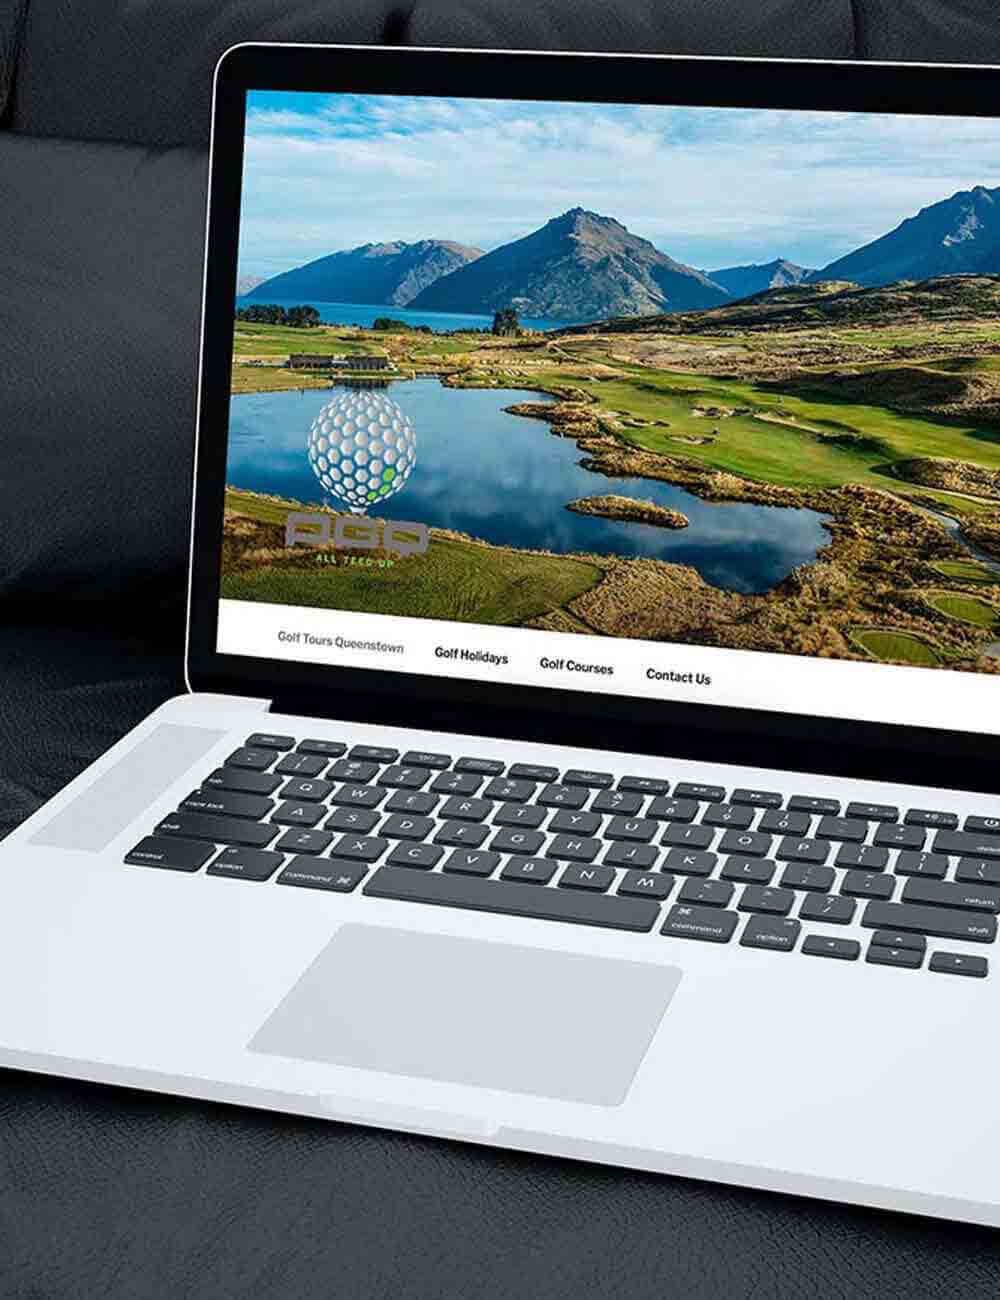 Peak Golf Queenstown Website